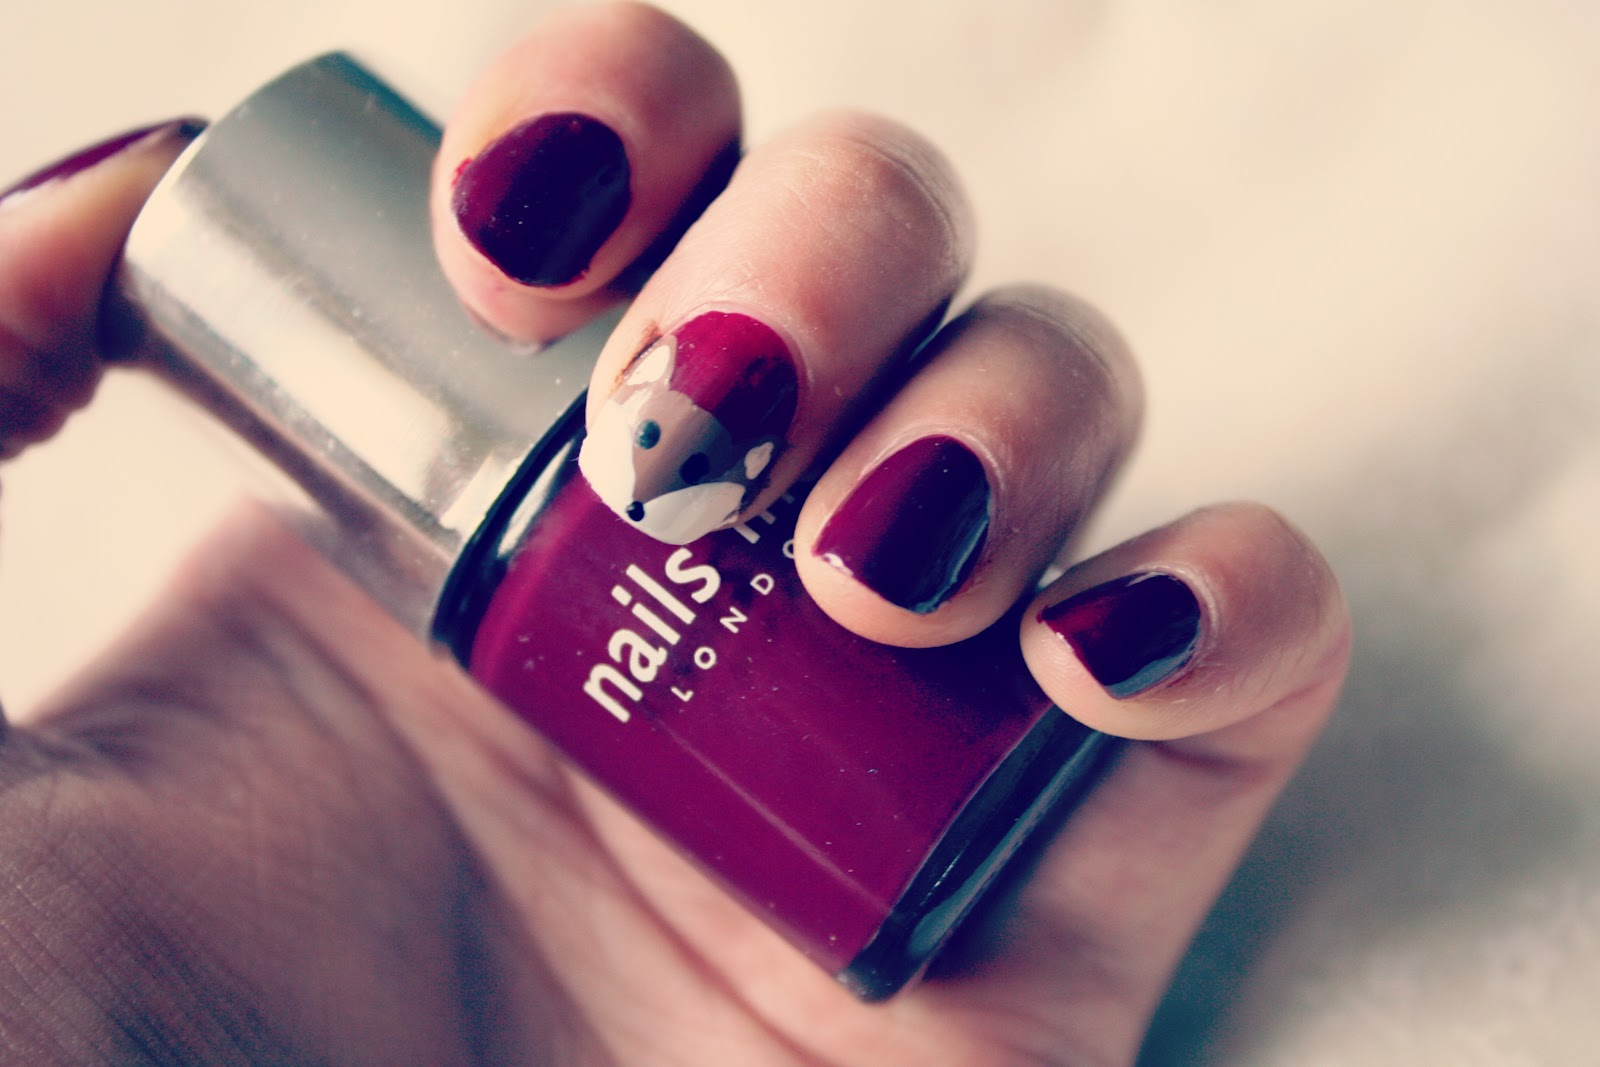 How to fox nail art tutorial step by step easy blog post 1600x1067